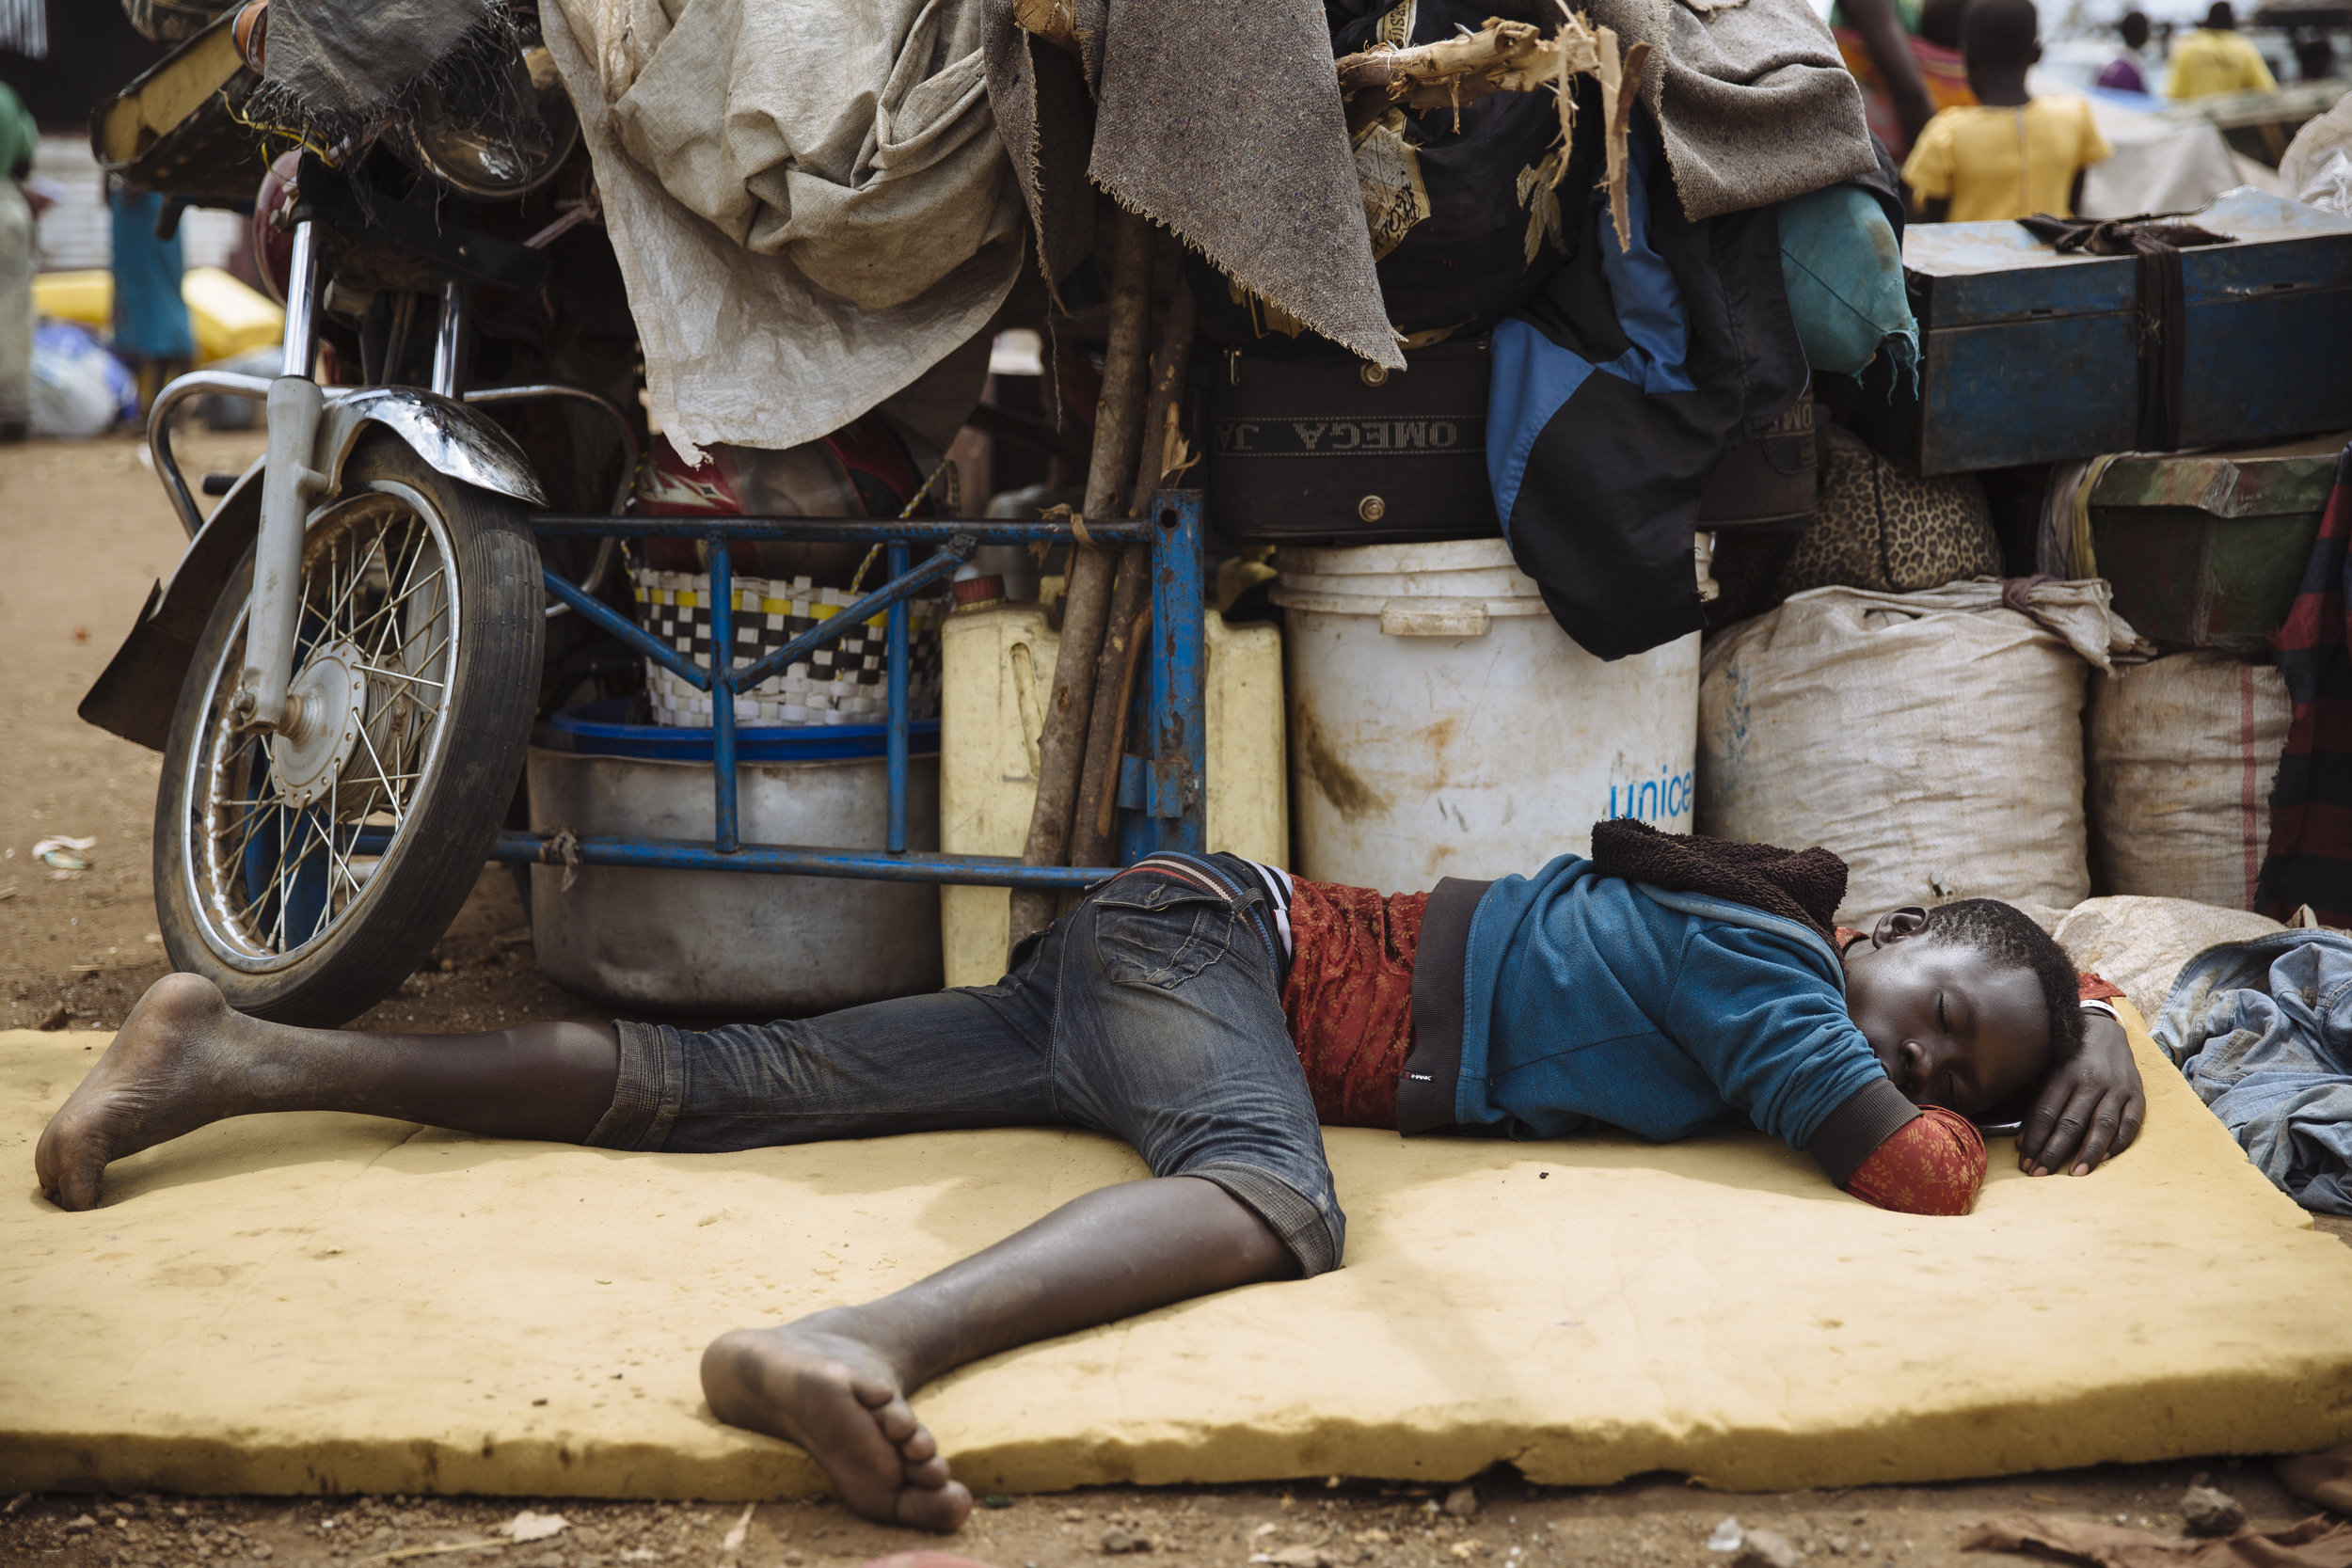 A South Sudanese refugee sleeps on a mattress alongside personal belongings at the Imvepi Reception Centre, Arua District, Northern Region, Uganda.